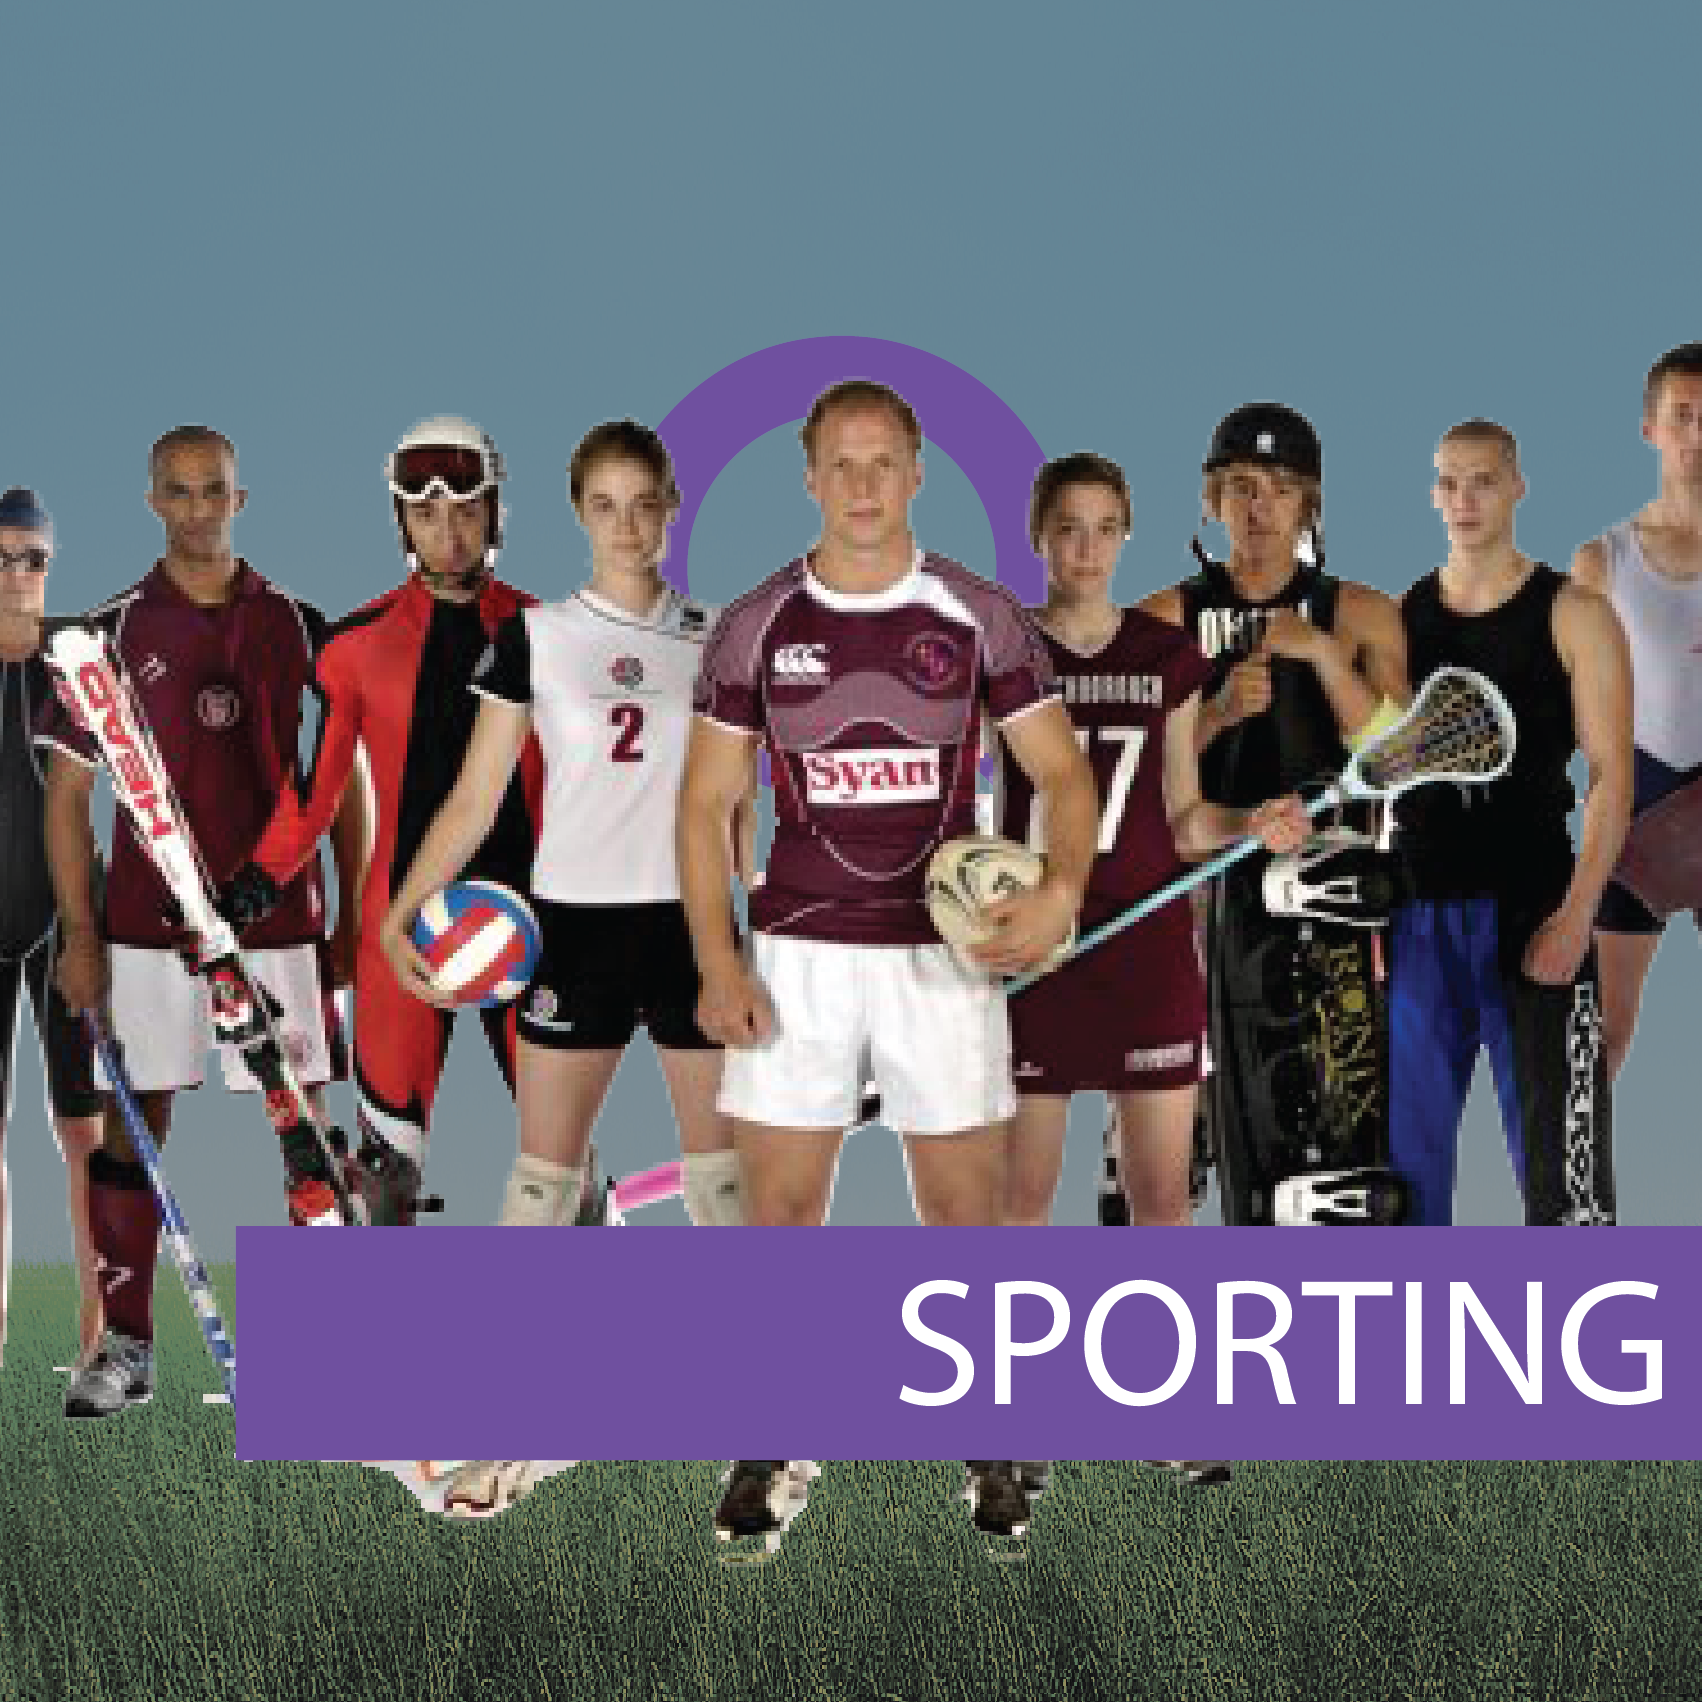 Solutions for the Sporting Groups